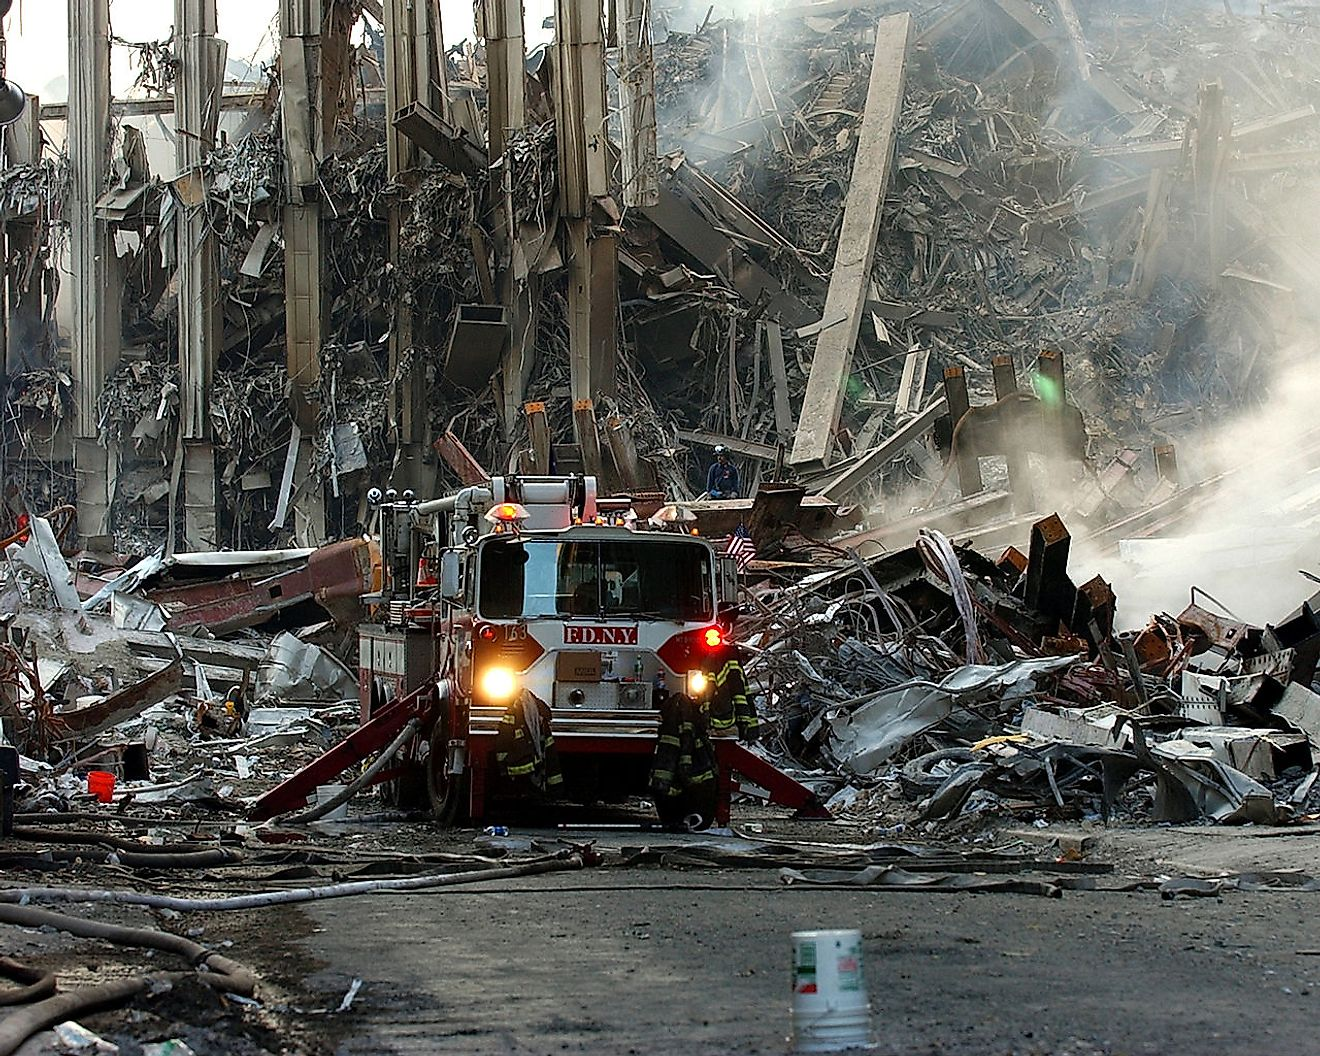 A lone fire engine at the crime scene in Manhattan where the World Trade Center collapsed following the Sept. 11 terrorist attack. Image credit: Chief Photographer's Mate Eric J. TIlford./Public domain